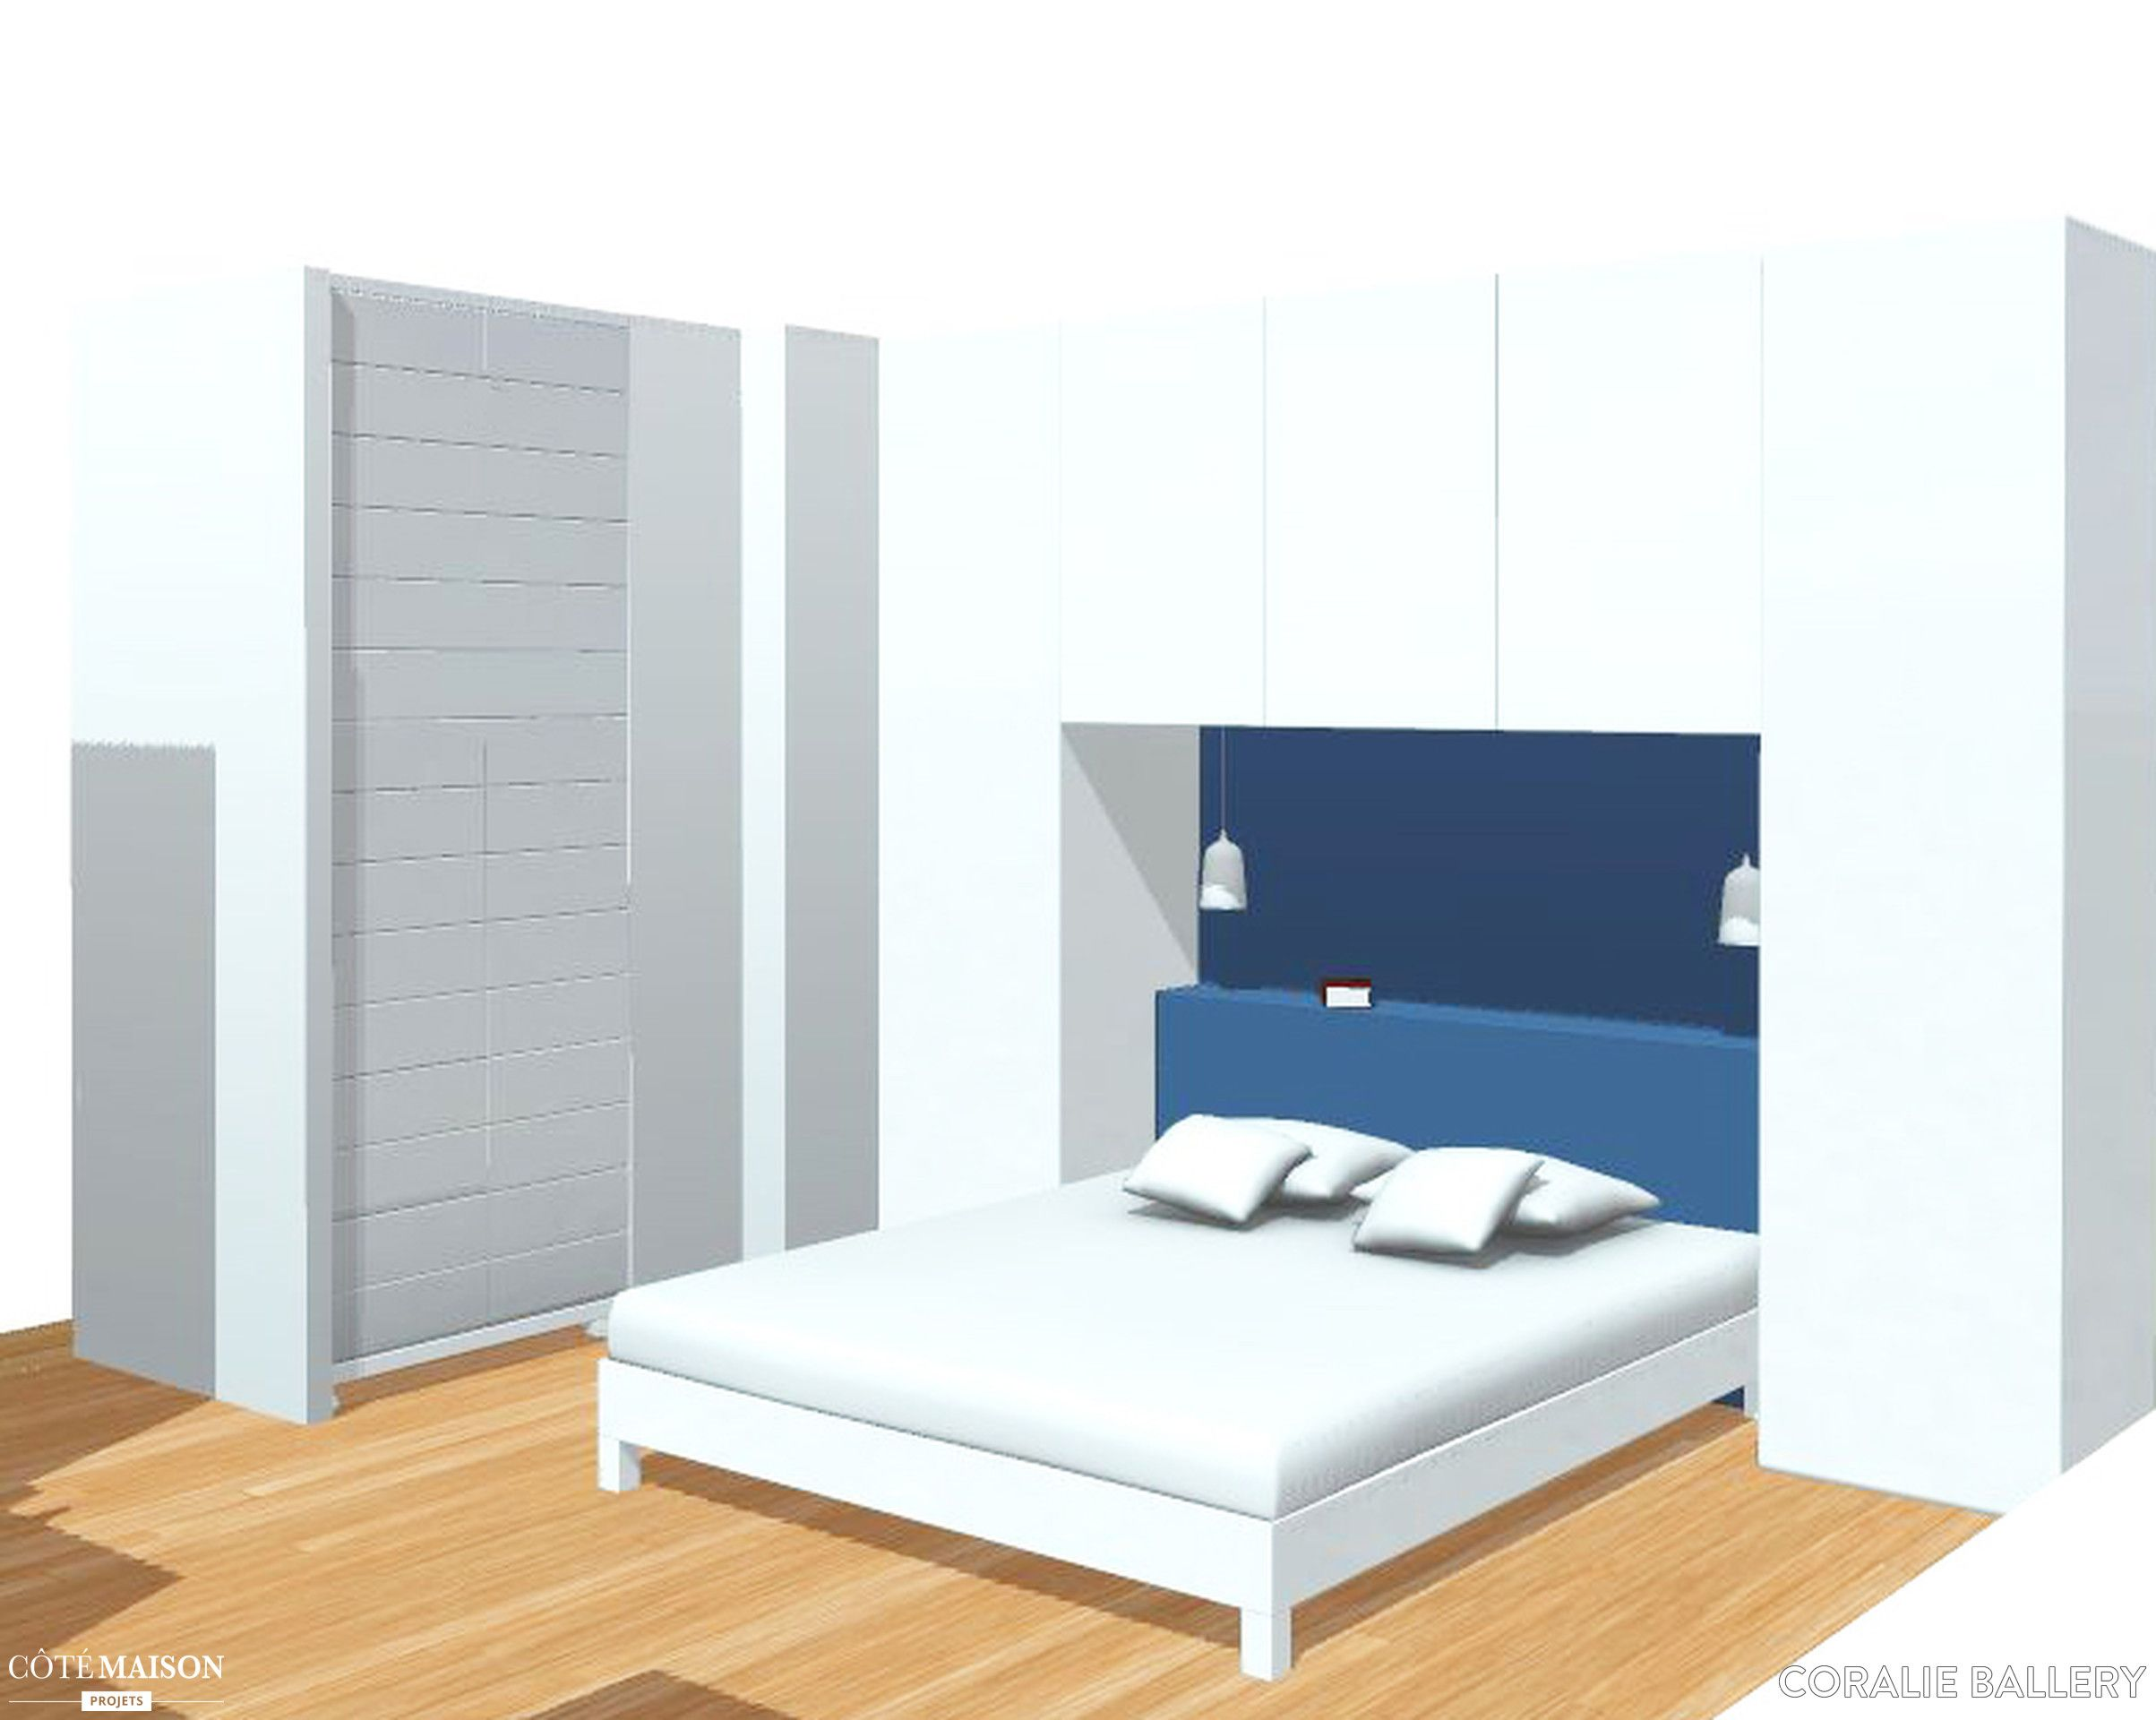 cration et ralisation sur mesure un pont de lit dressing modern bedroom design - Pont De Lit Design